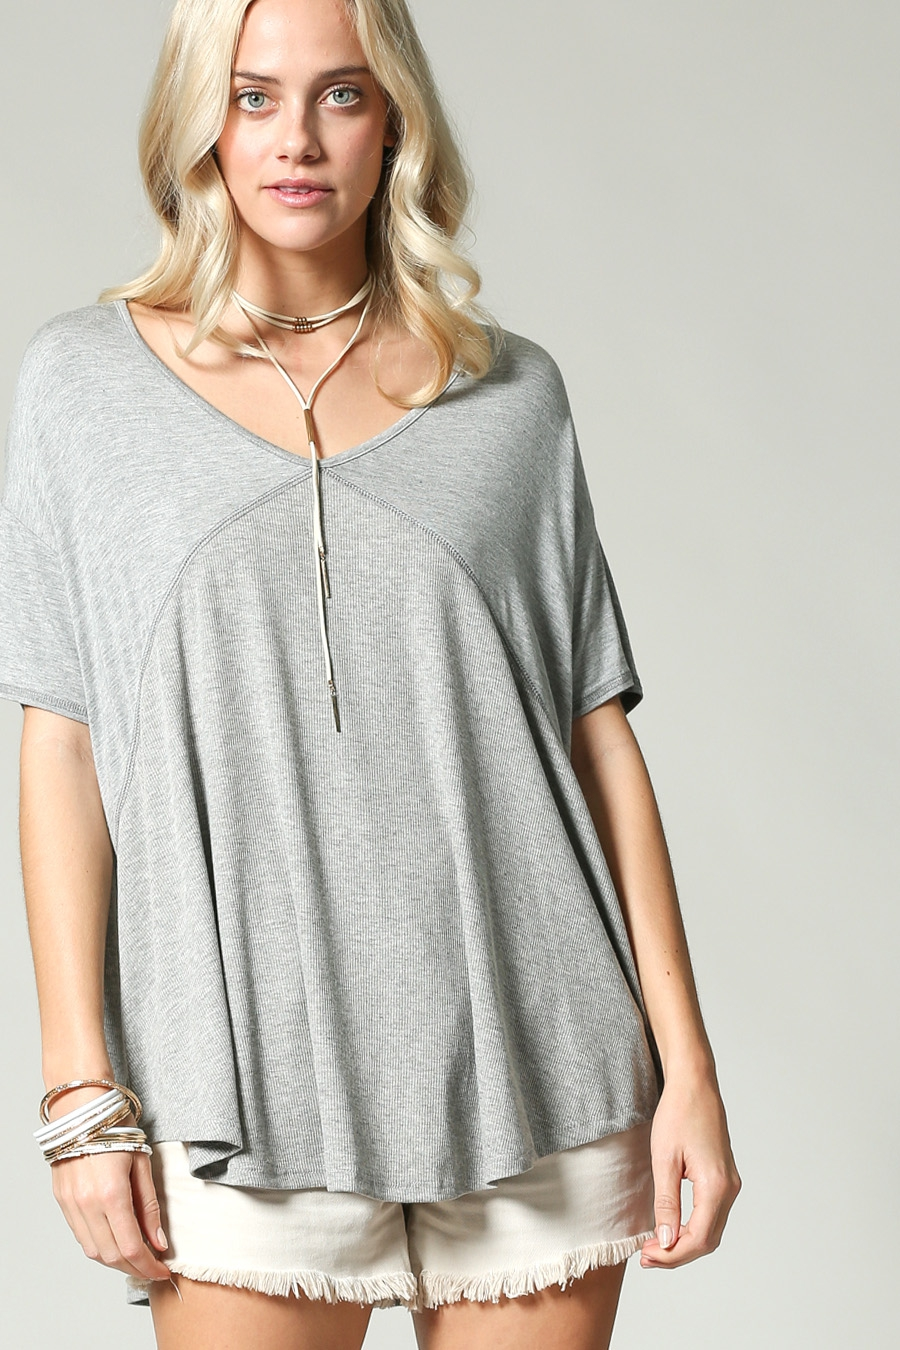 OVERSIZE CASUAL RIB TOP WITH RAYON - orangeshine.com